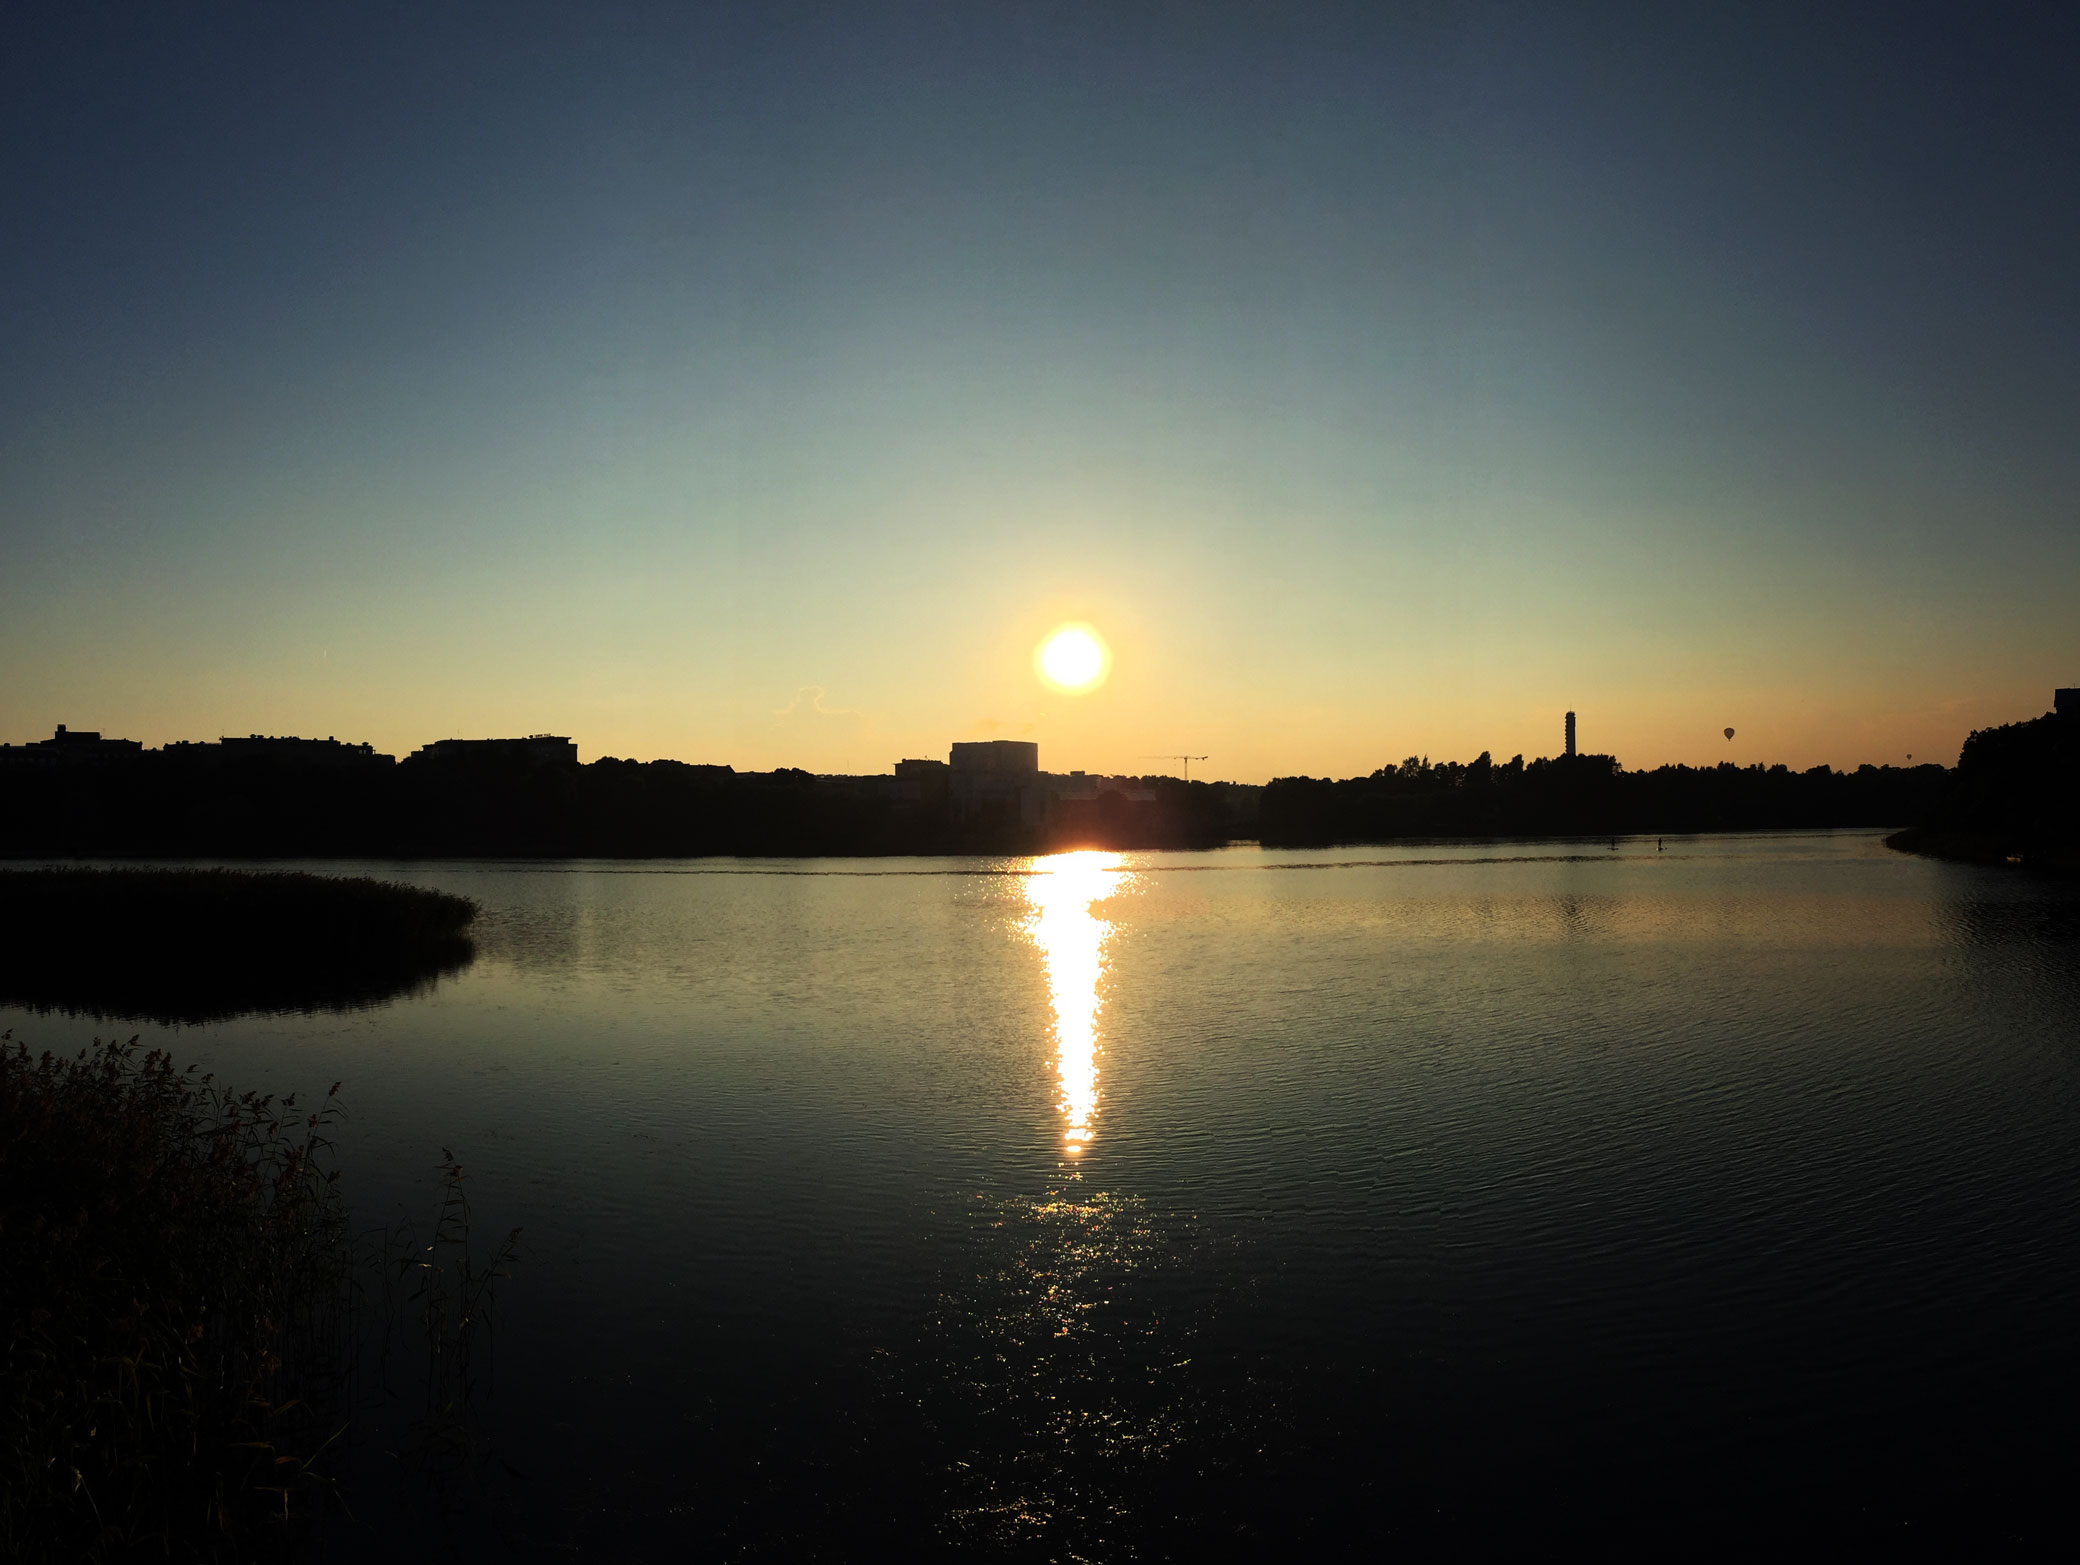 Sunset at Töölönlahti